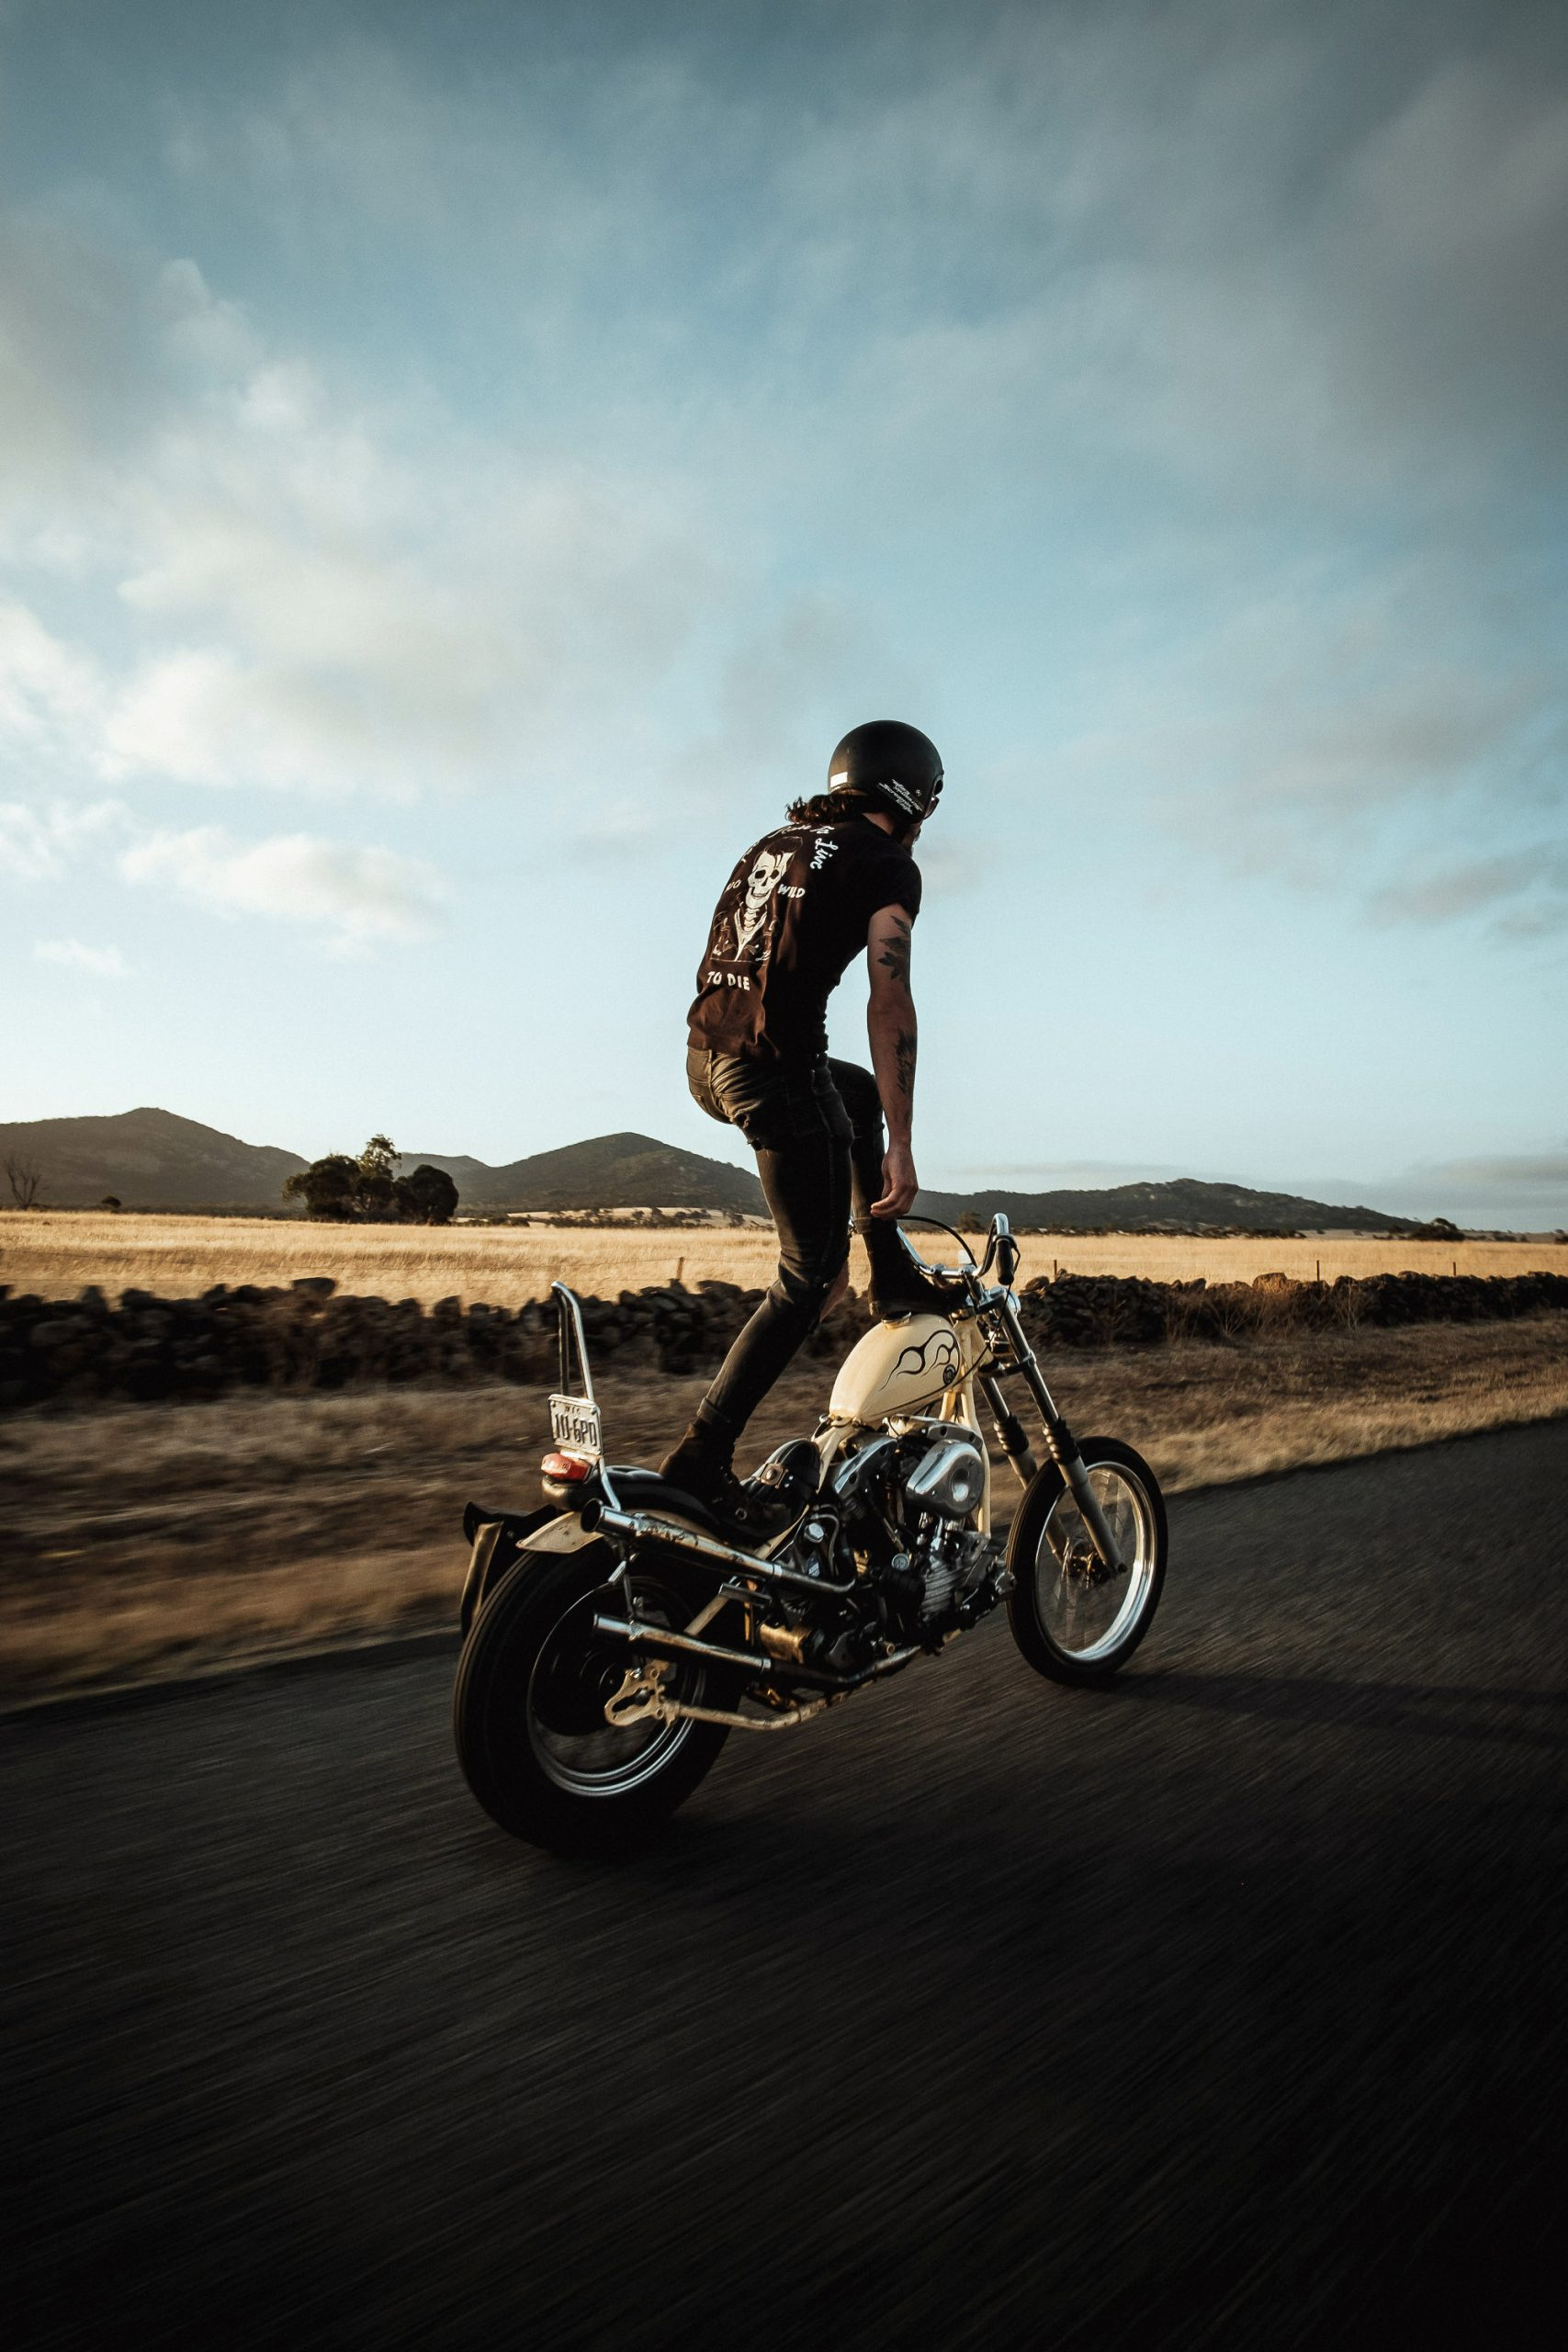 A Harley chopper rider in rural Australia stands upright on his bike as it travels down the road